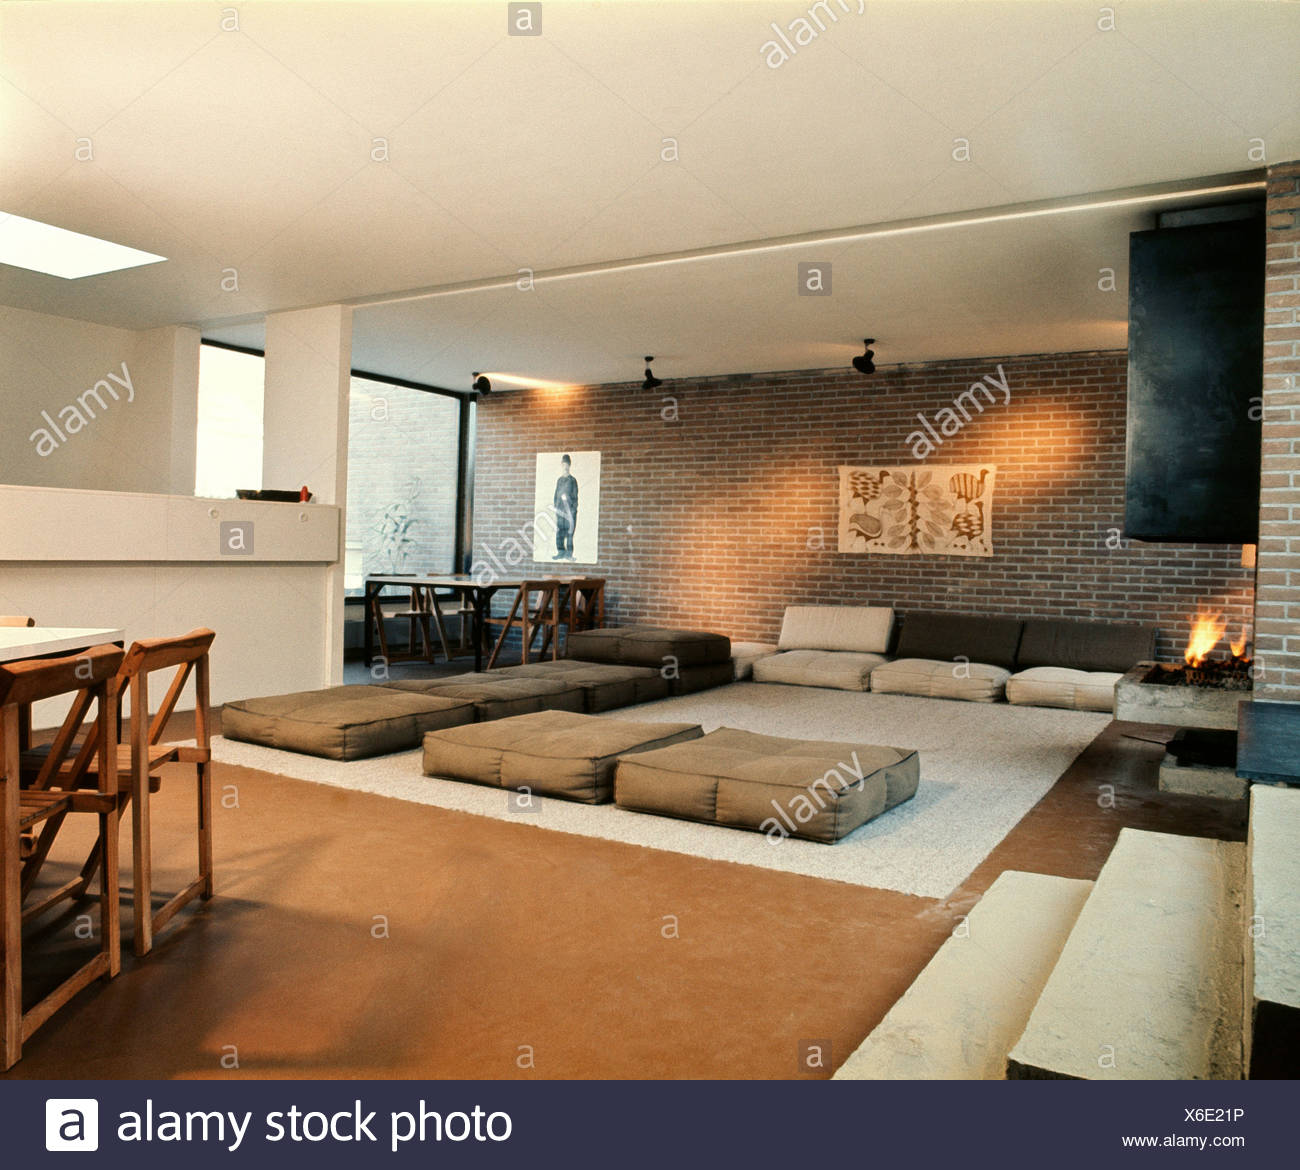 Large Living Dining Room Brick Walls White Ceiling Brown Carpet Grey Rug And Large Square Brown And Grey Flocushions Open Stock Photo Alamy